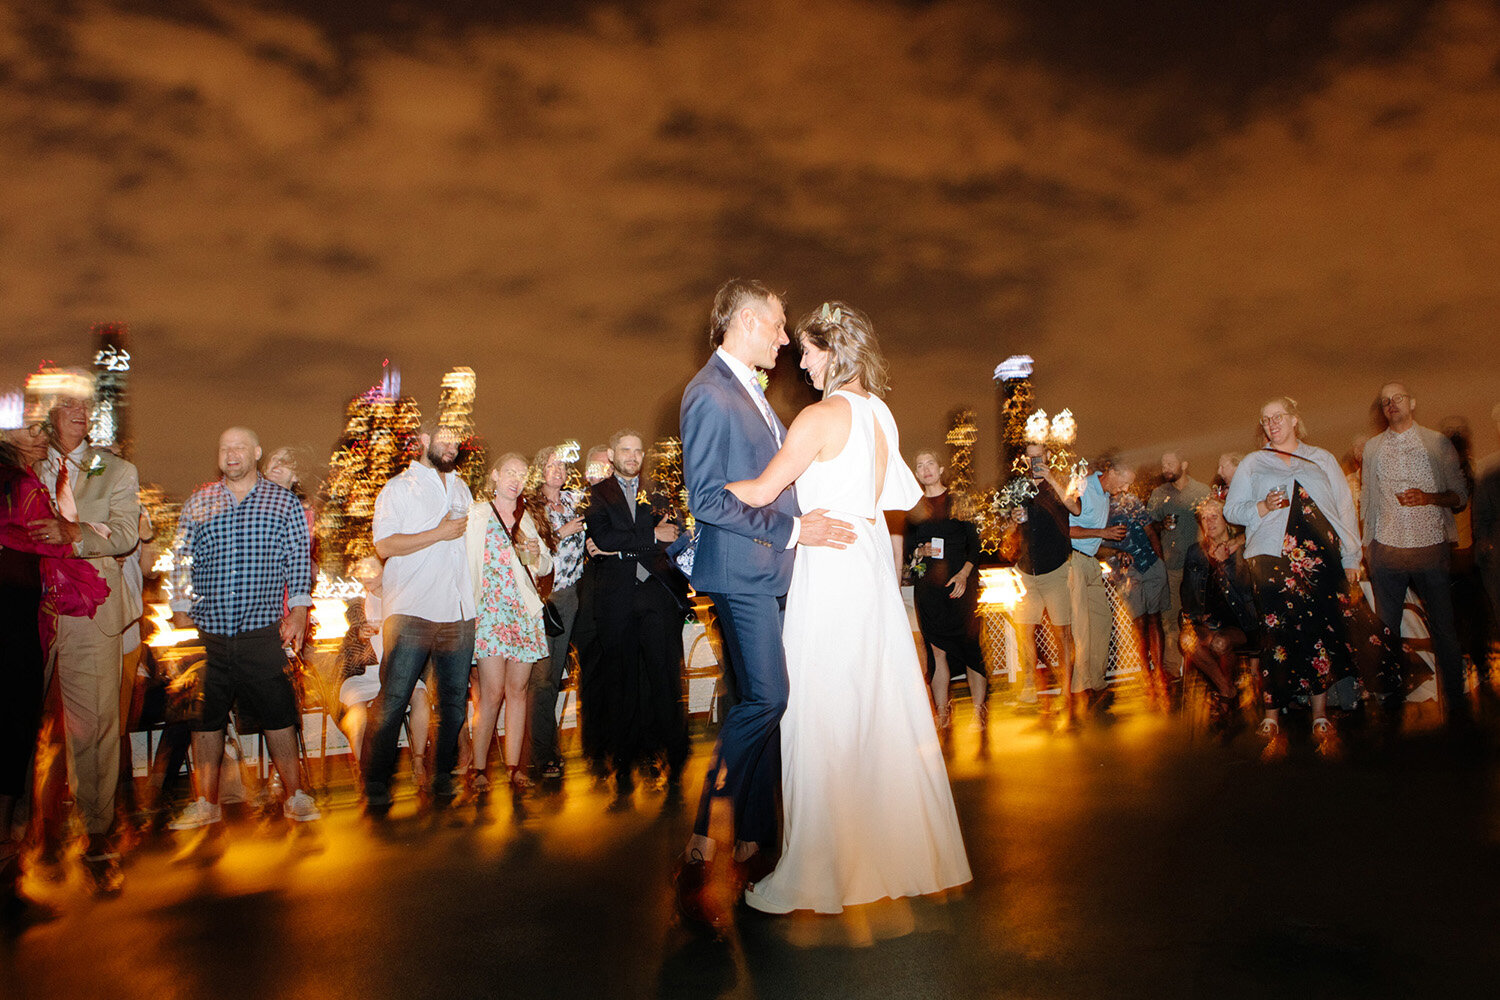 bride-and-groom-first-dance-on-lake-michigan.jpg